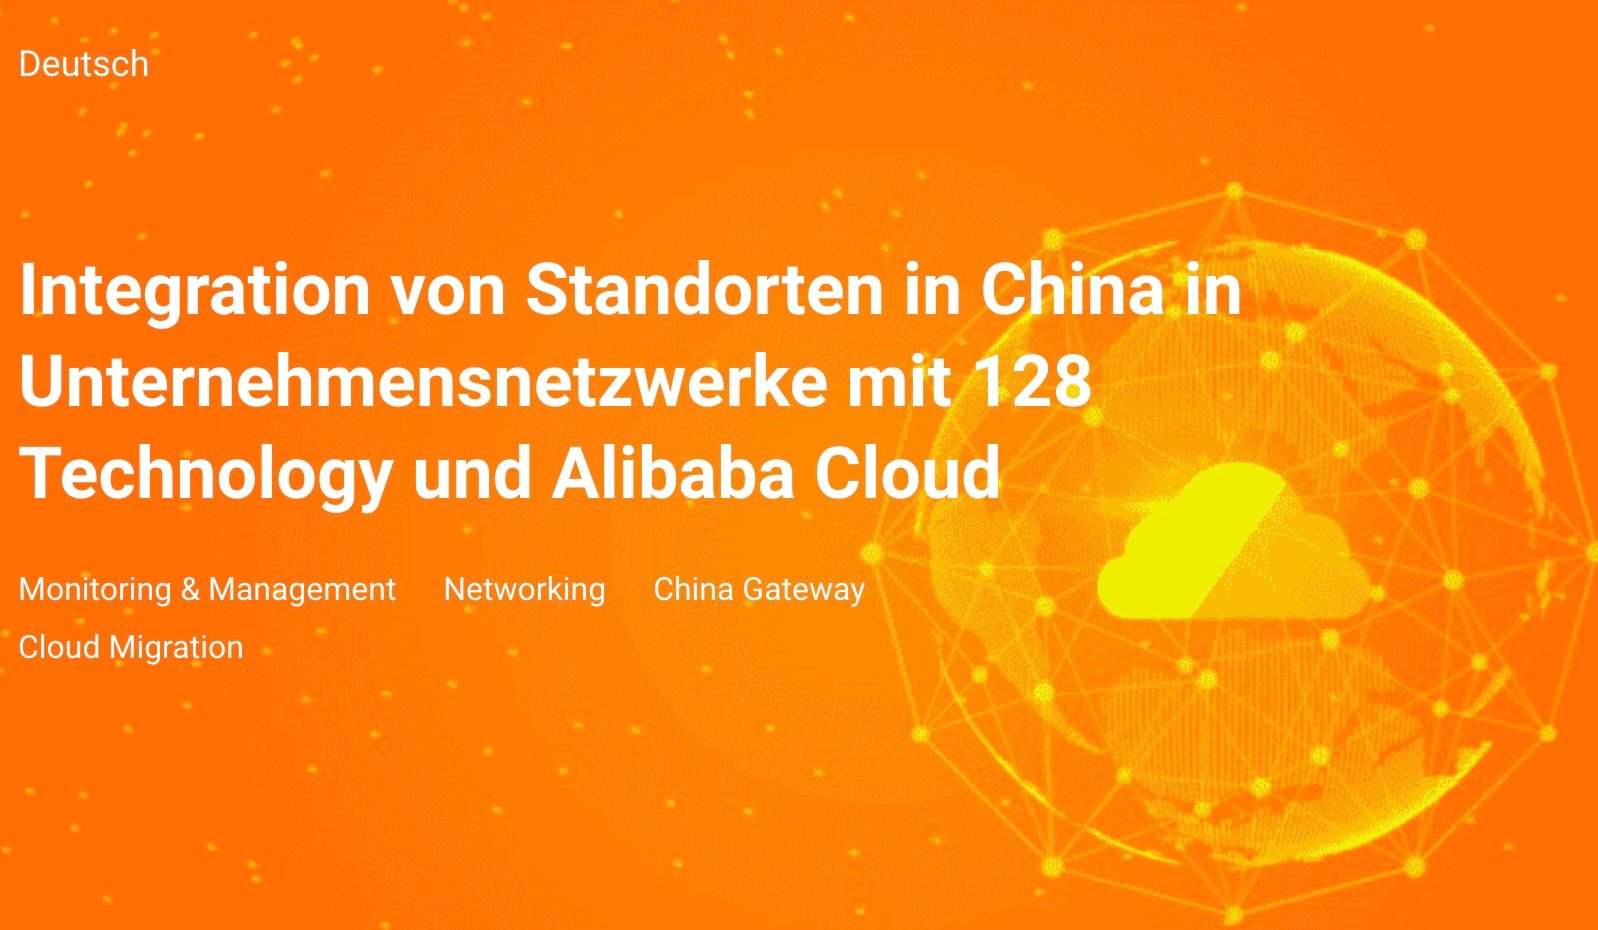 Integration von Standorten in China mit 128 Technology & Alibaba Cloud